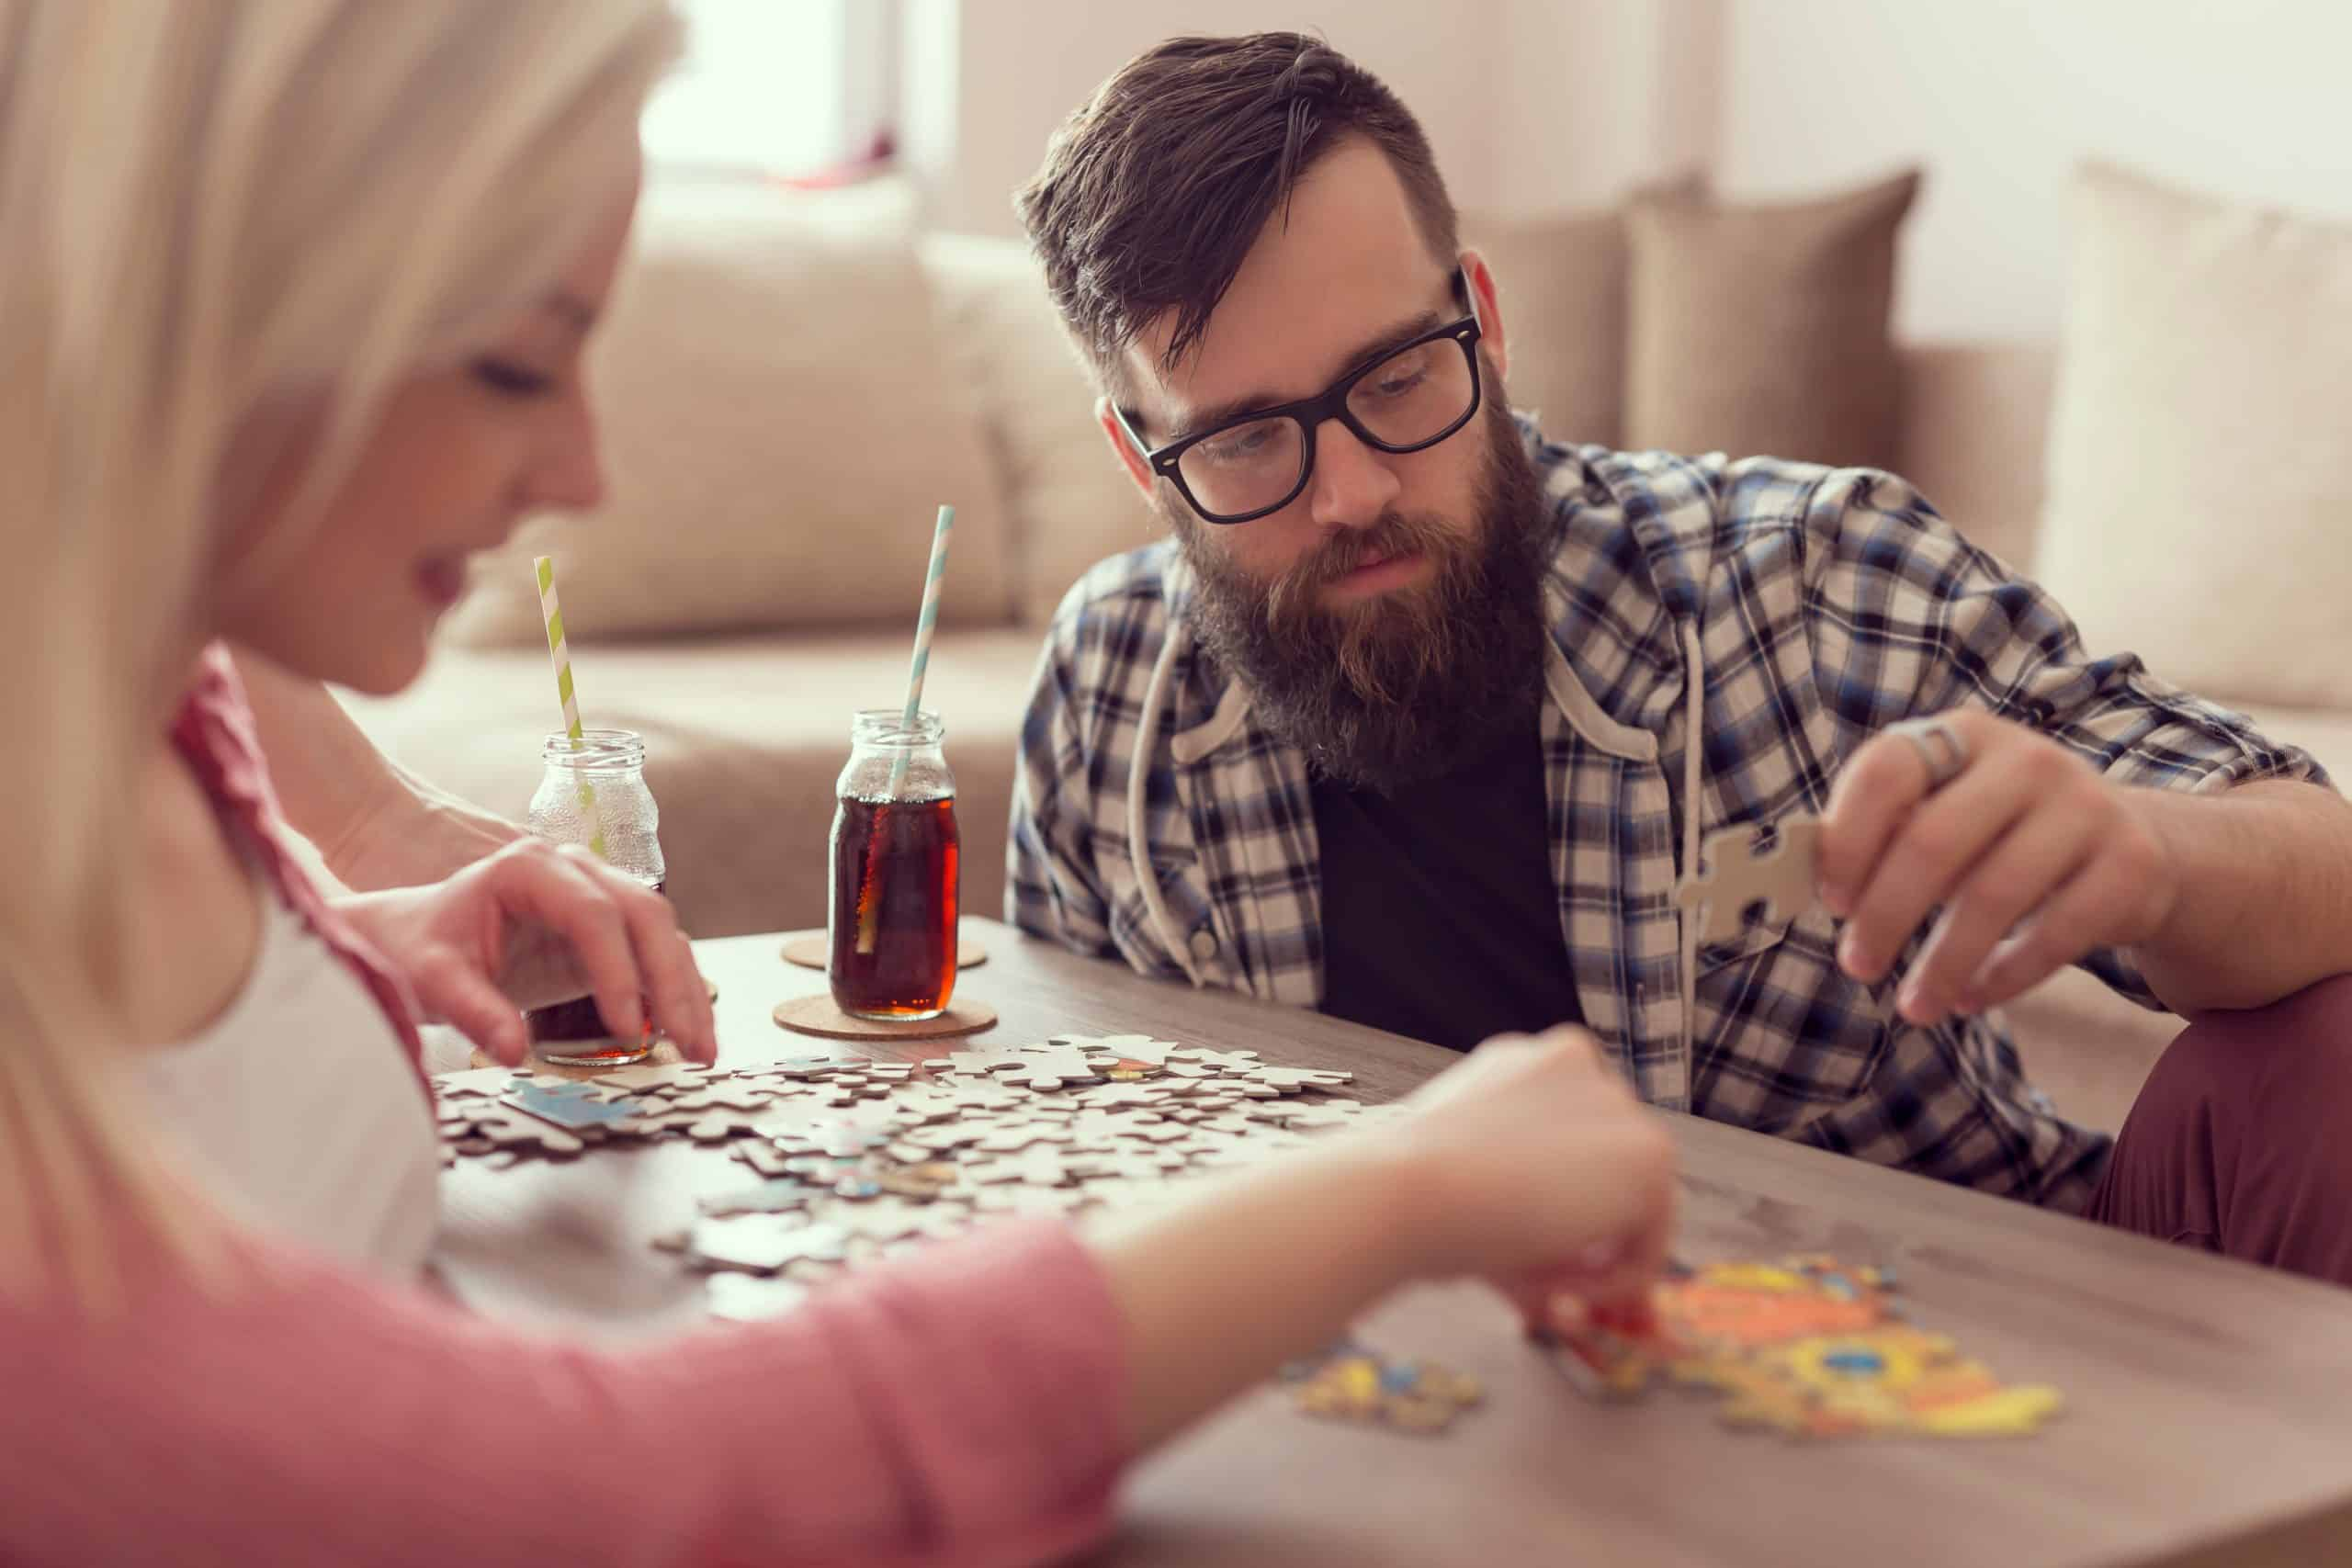 Couple in love sitting on the floor next to a table, solving a jigsaw puzzle problem and enjoying their leisure time activities family game